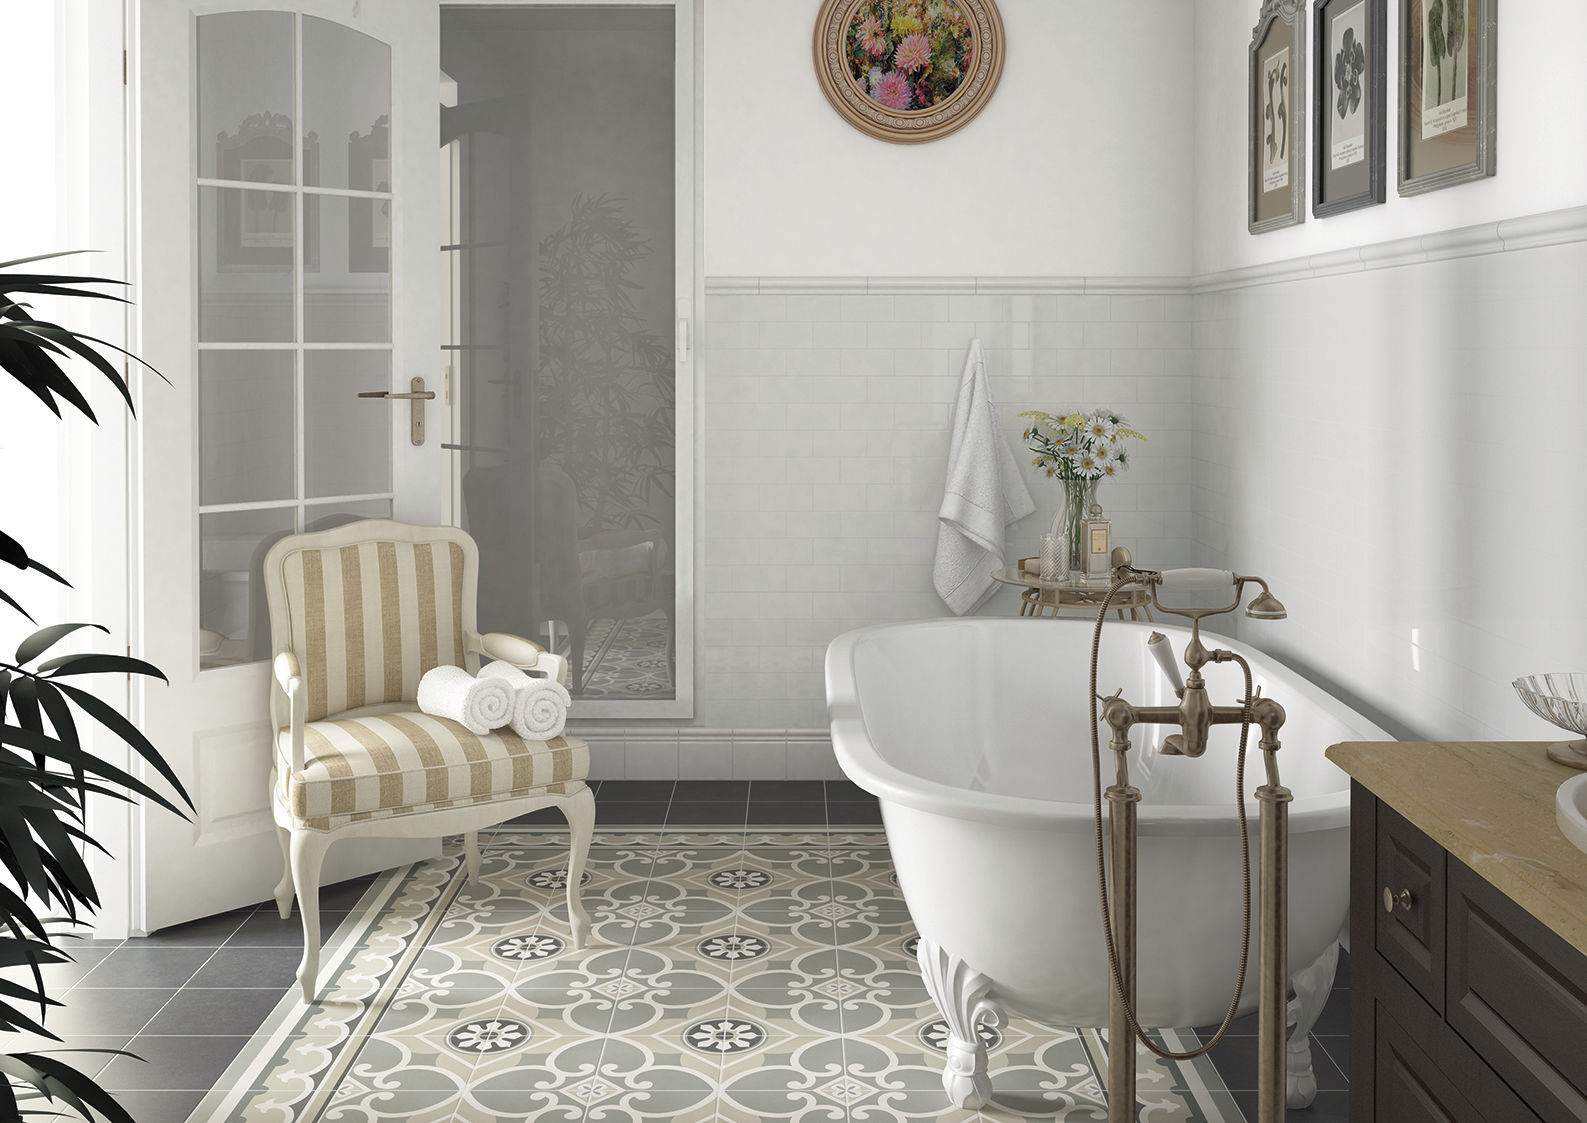 Bathroom Tile Floor Cement Art Nouveau Caprice Nais